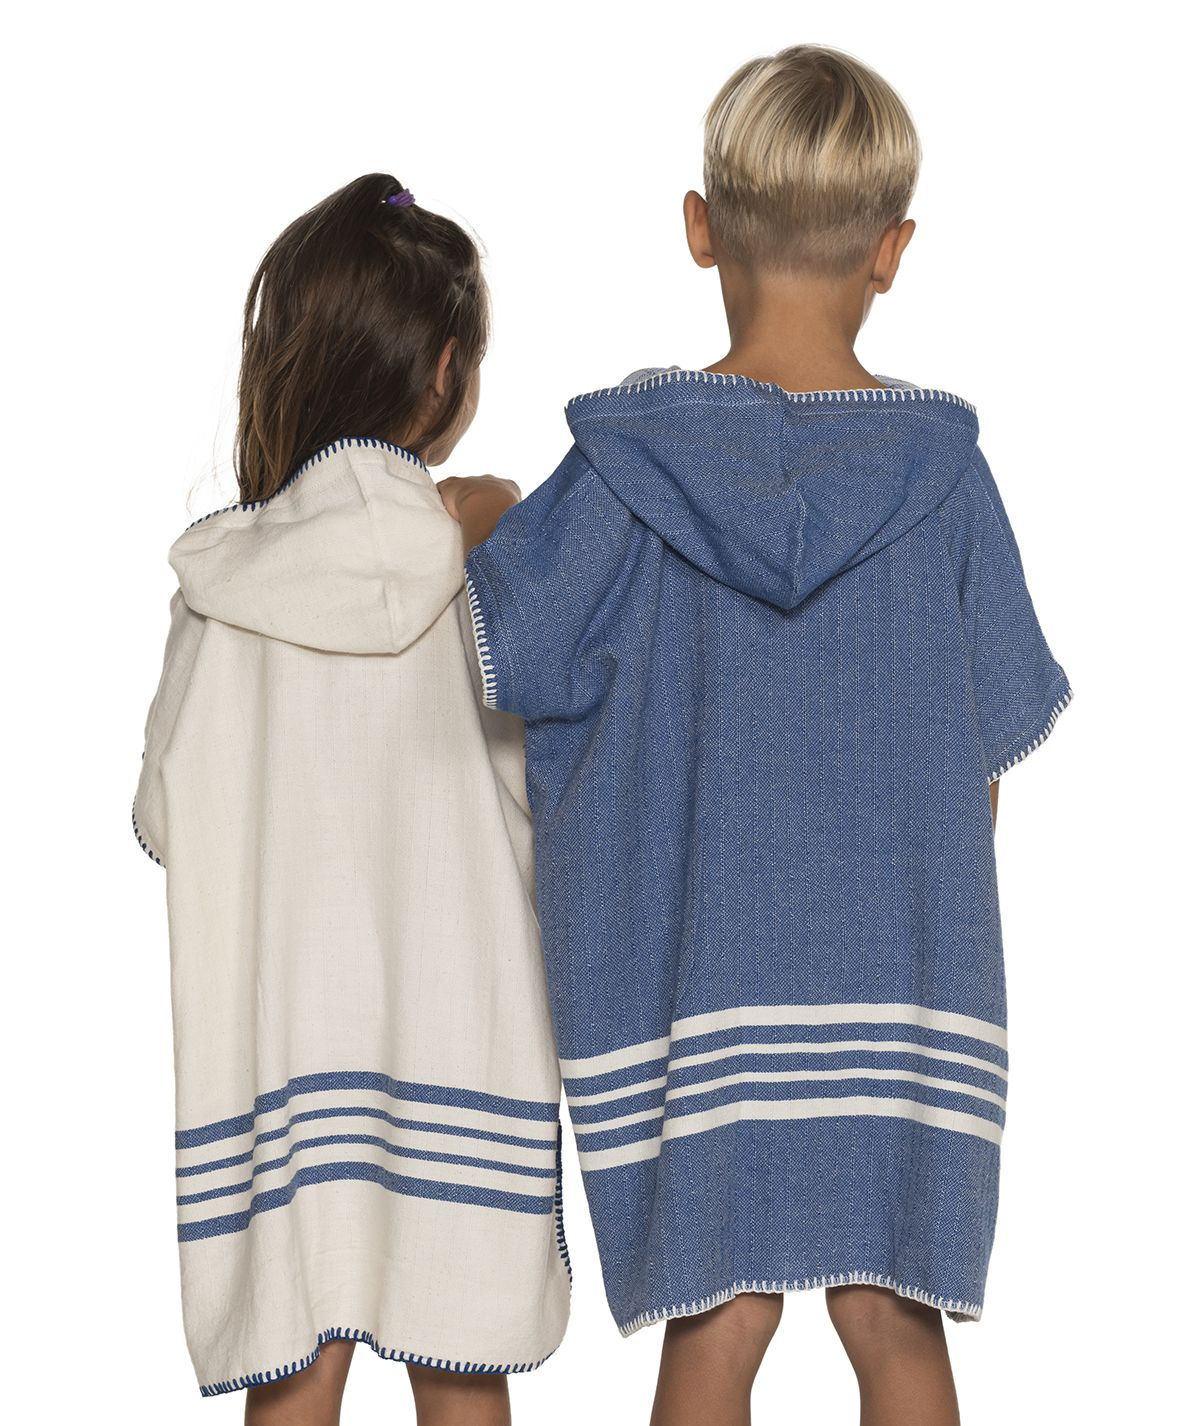 Poncho Kiddo / Sultan - Natural / Royal Blue